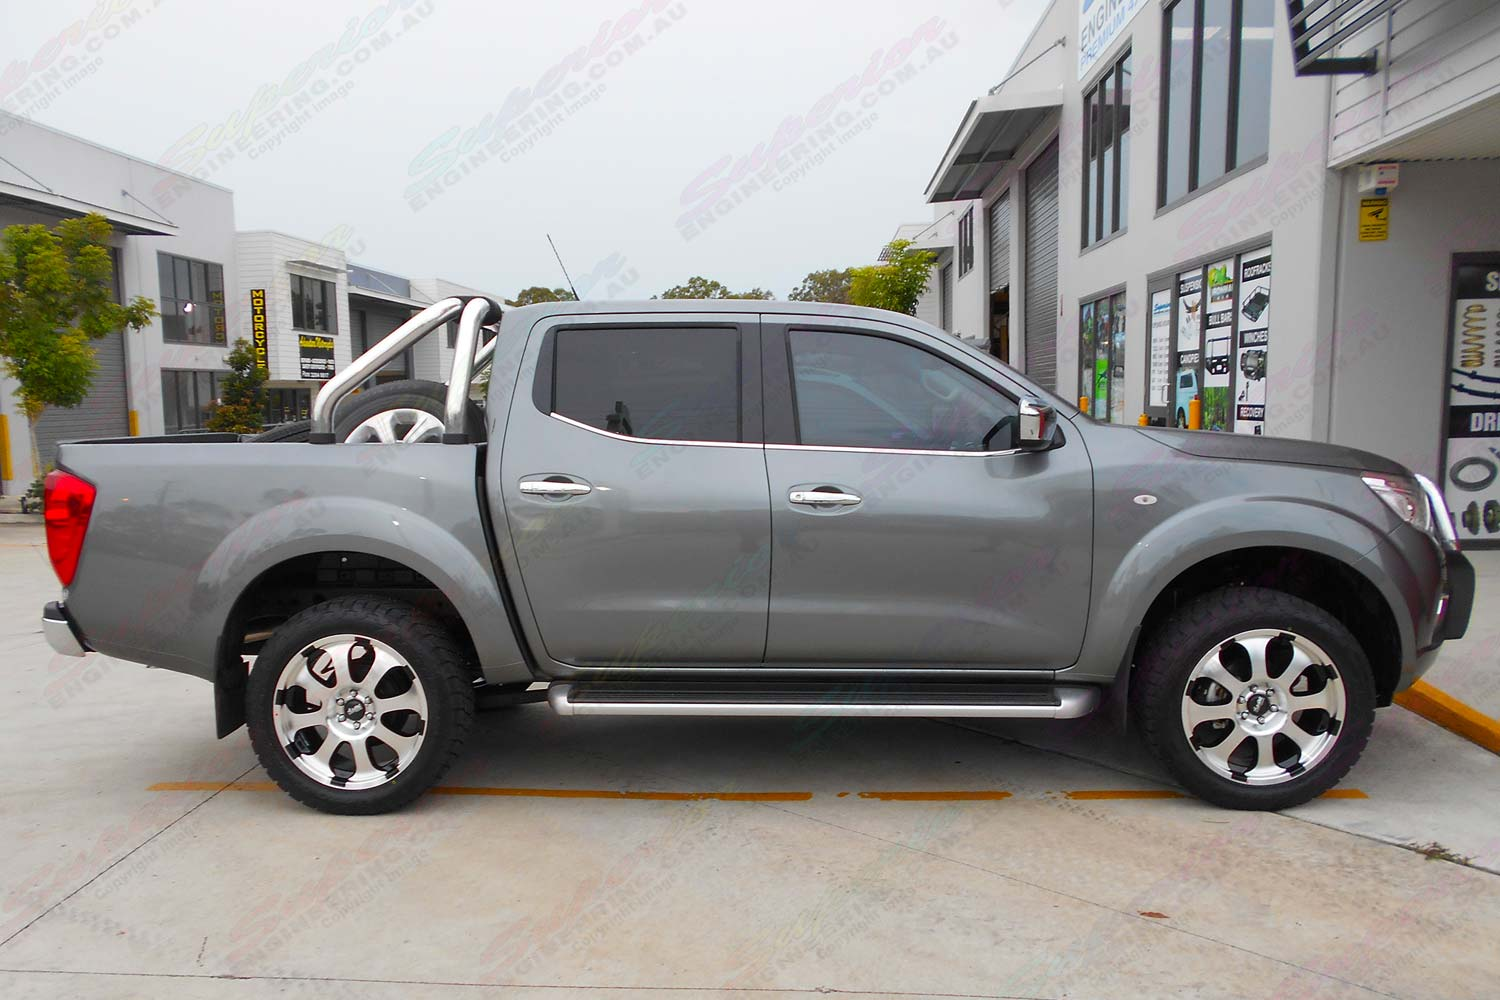 Left side view of a grey Nissan Navara NP300 after being fitted with a 35mm Ironman lift kit, Superior adjustable panhard rod, swaybar extensions & Advanti Hammer alloy wheels